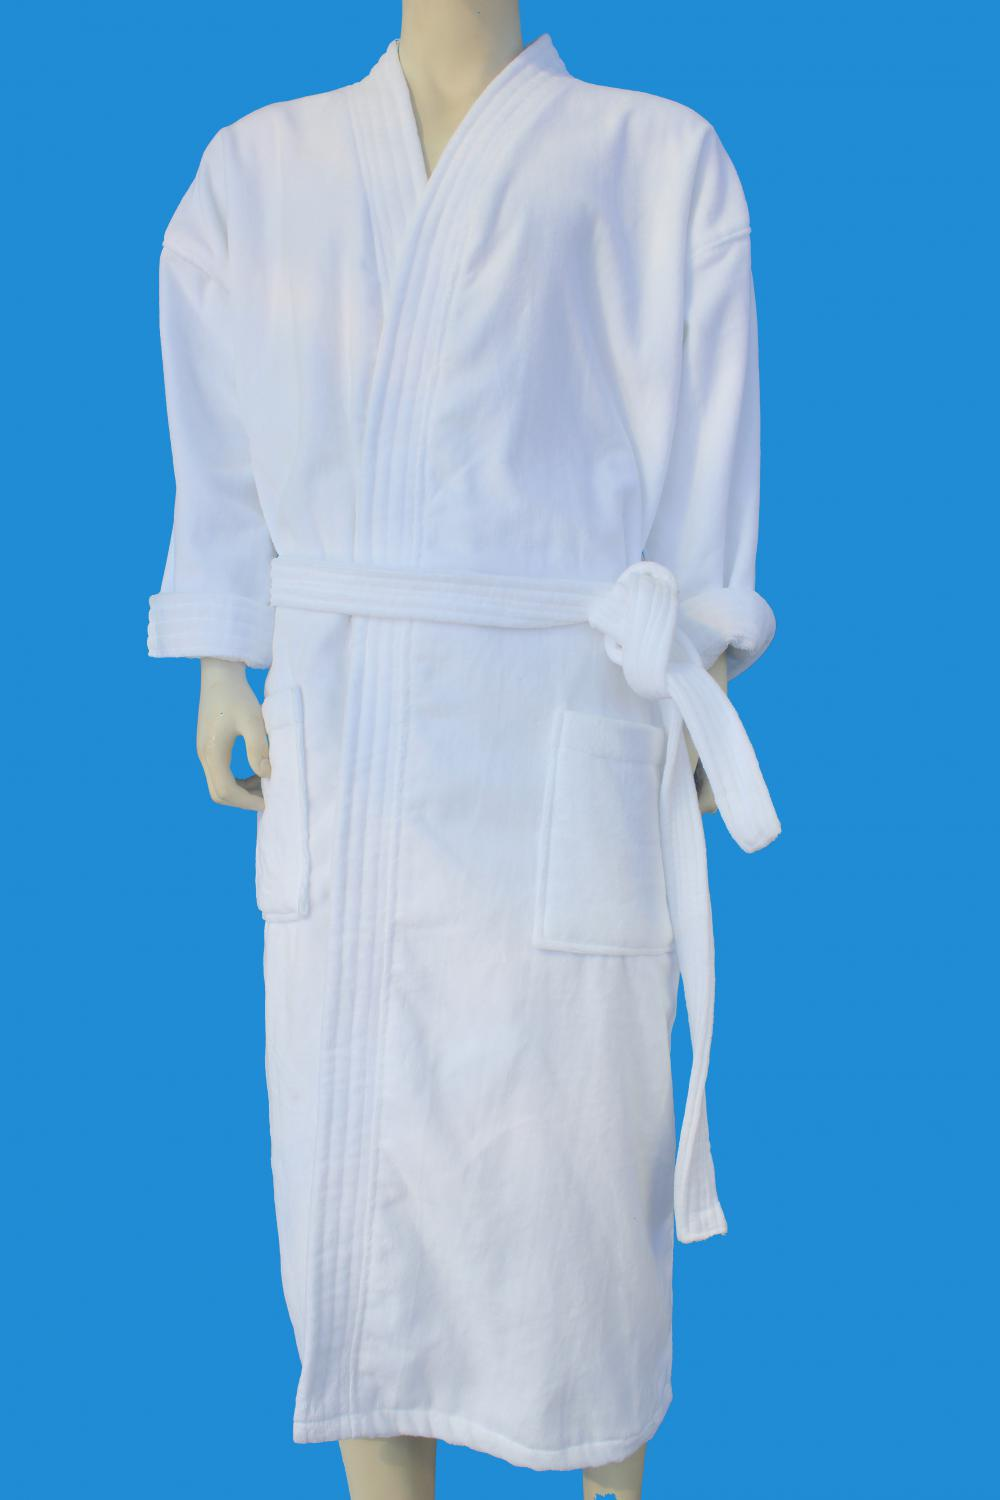 100%cotton velour kimono bathrobe